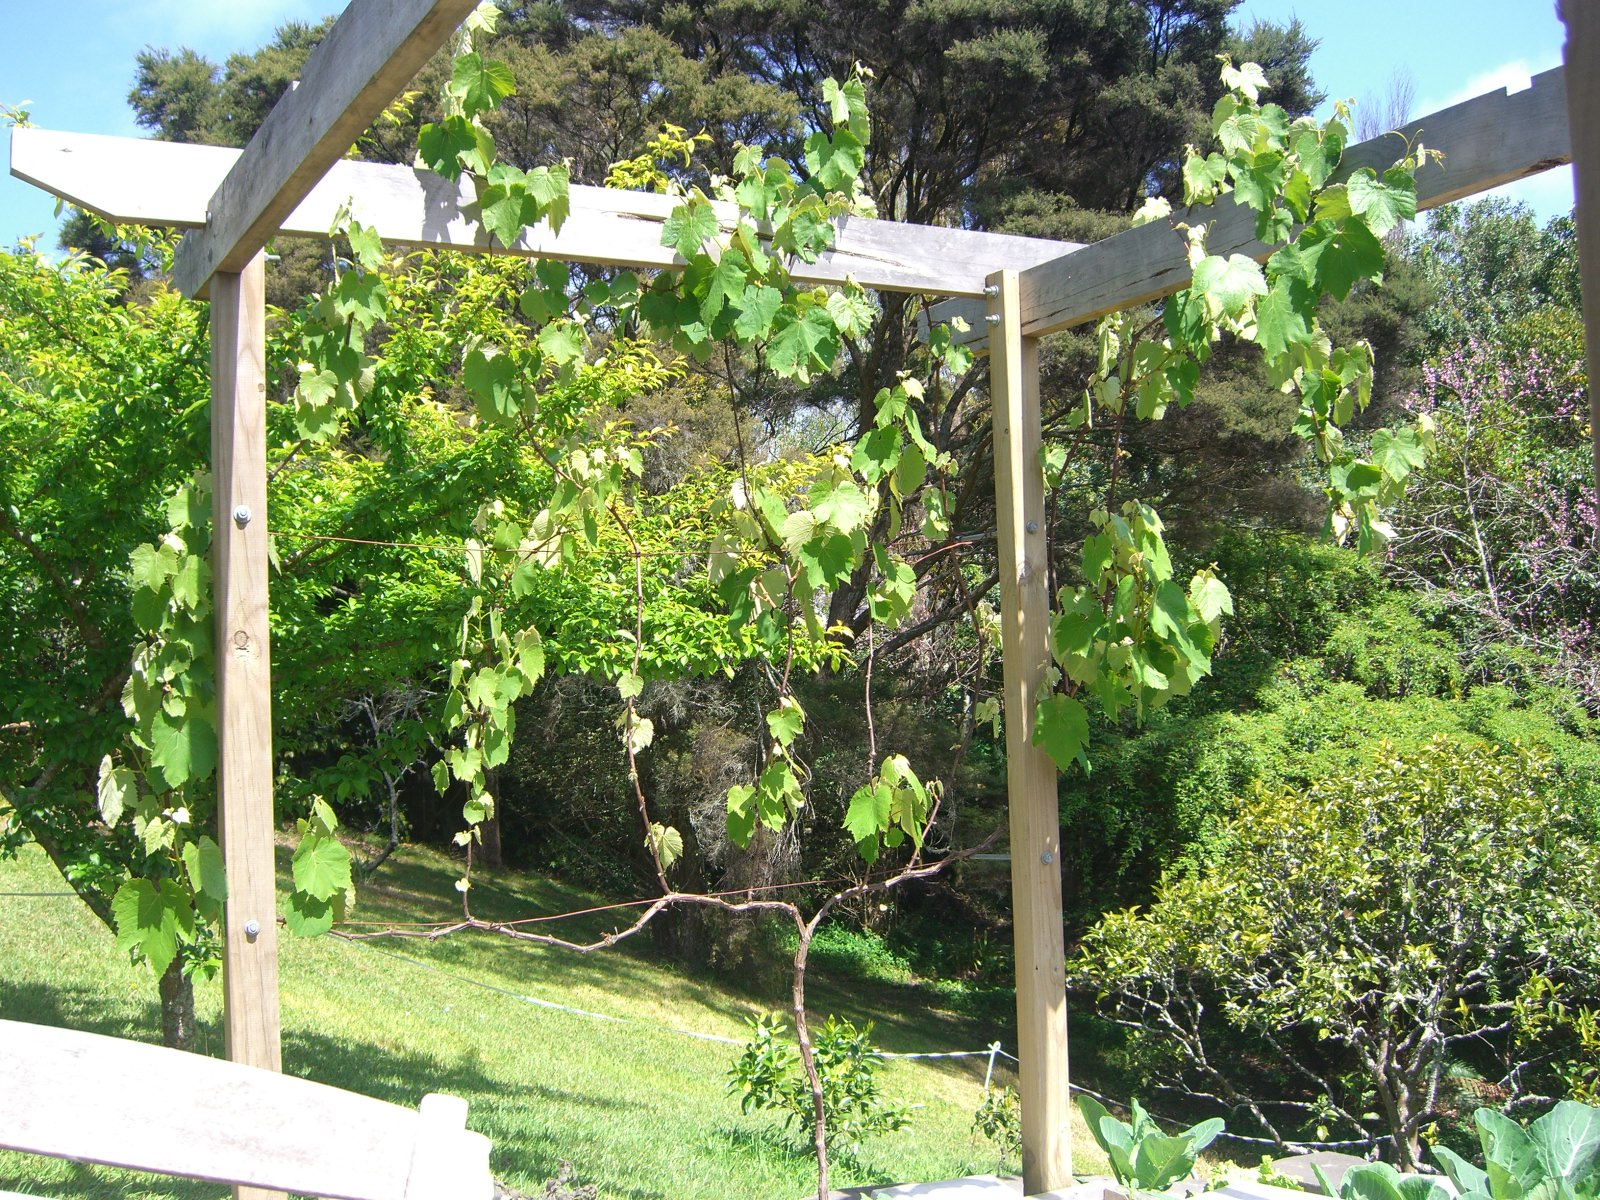 Dave's Garden: Growing Grapes